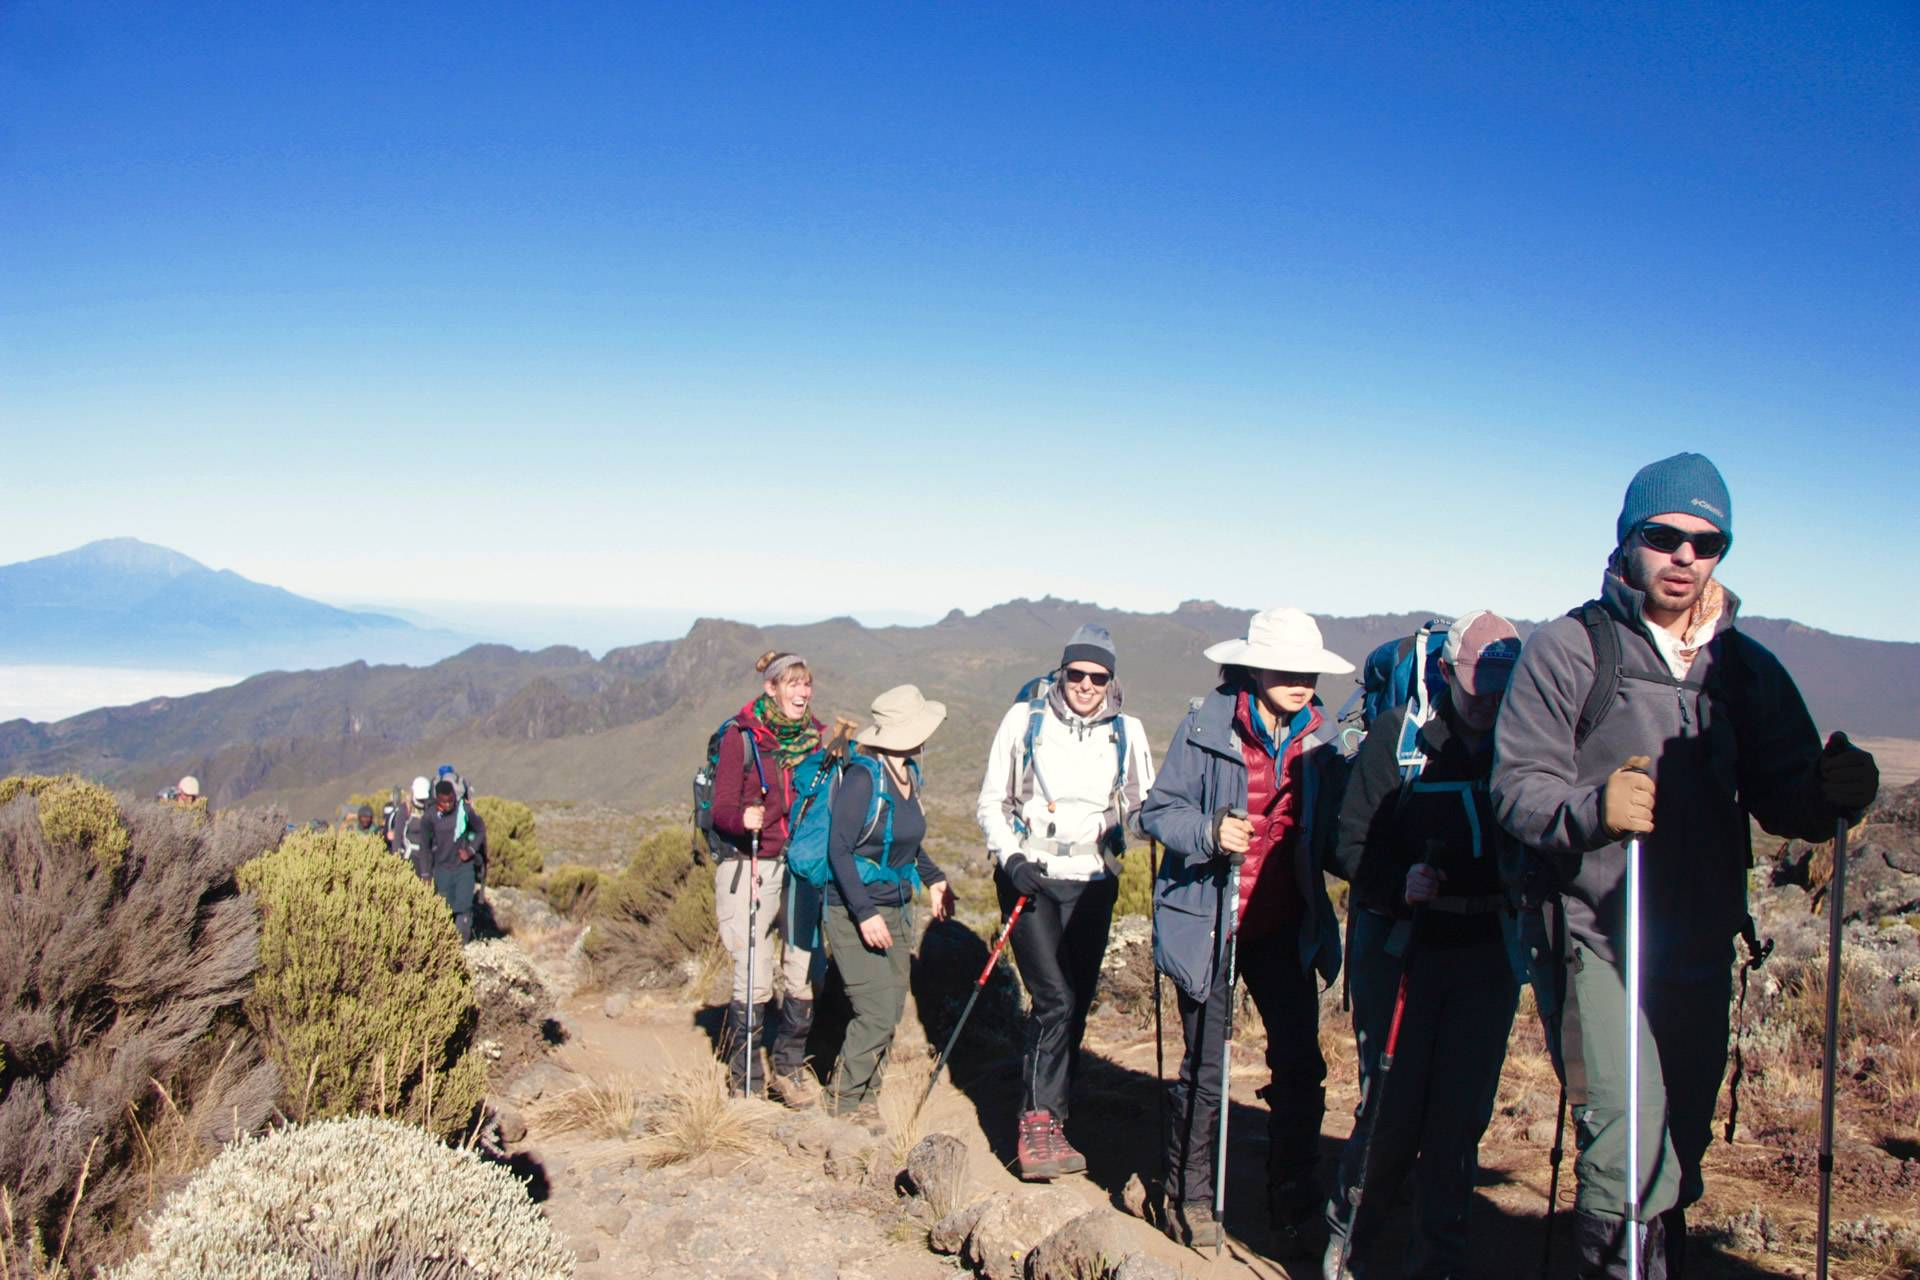 The Best Kilimanjaro Climbing Tour